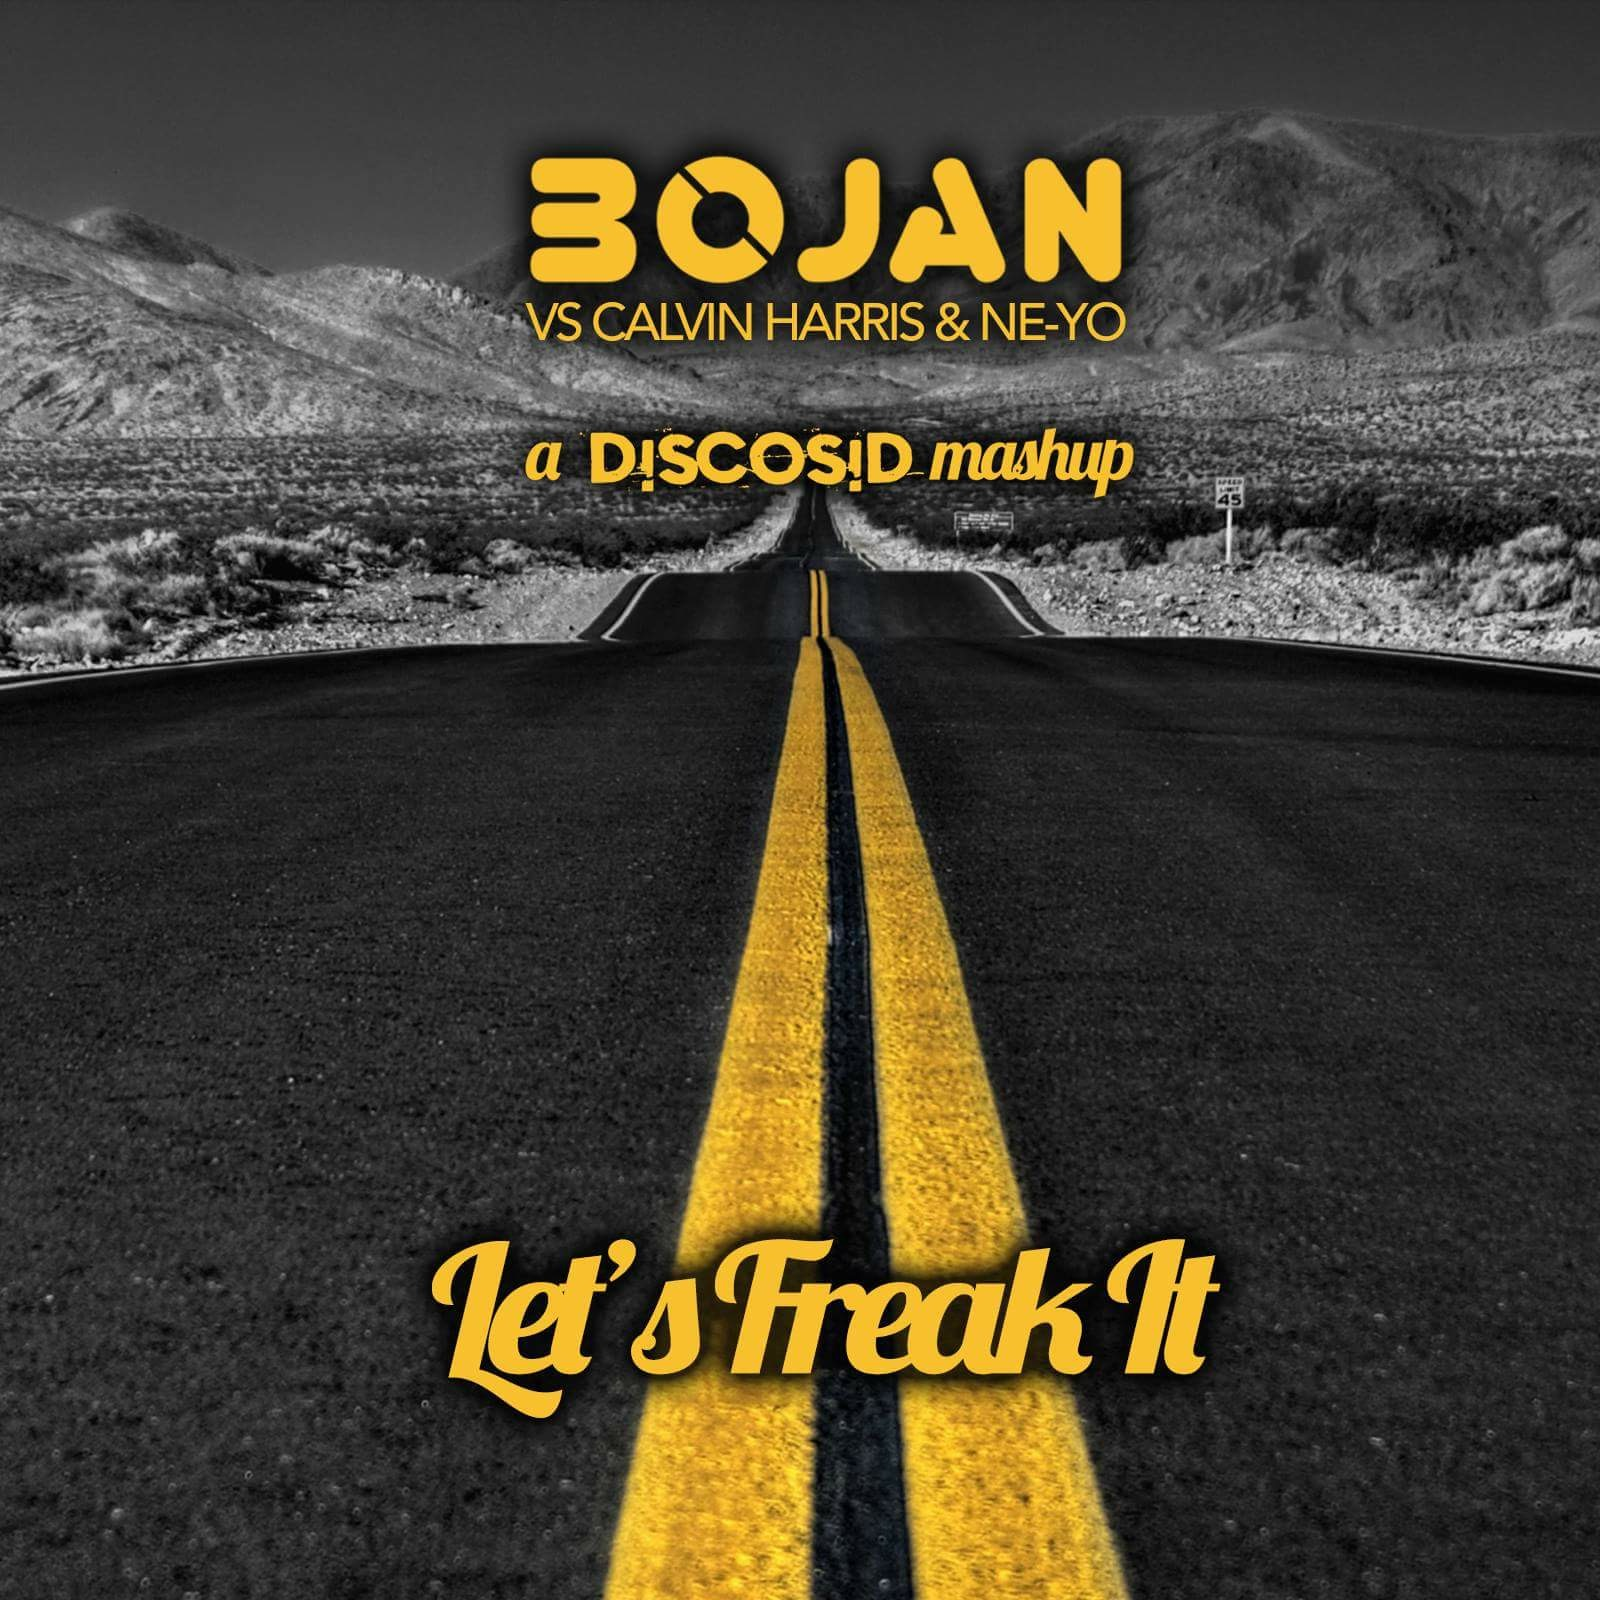 Bojan Vs Calvin Harris & Ne Yo - Let's Freak It (Discosid Mashup)